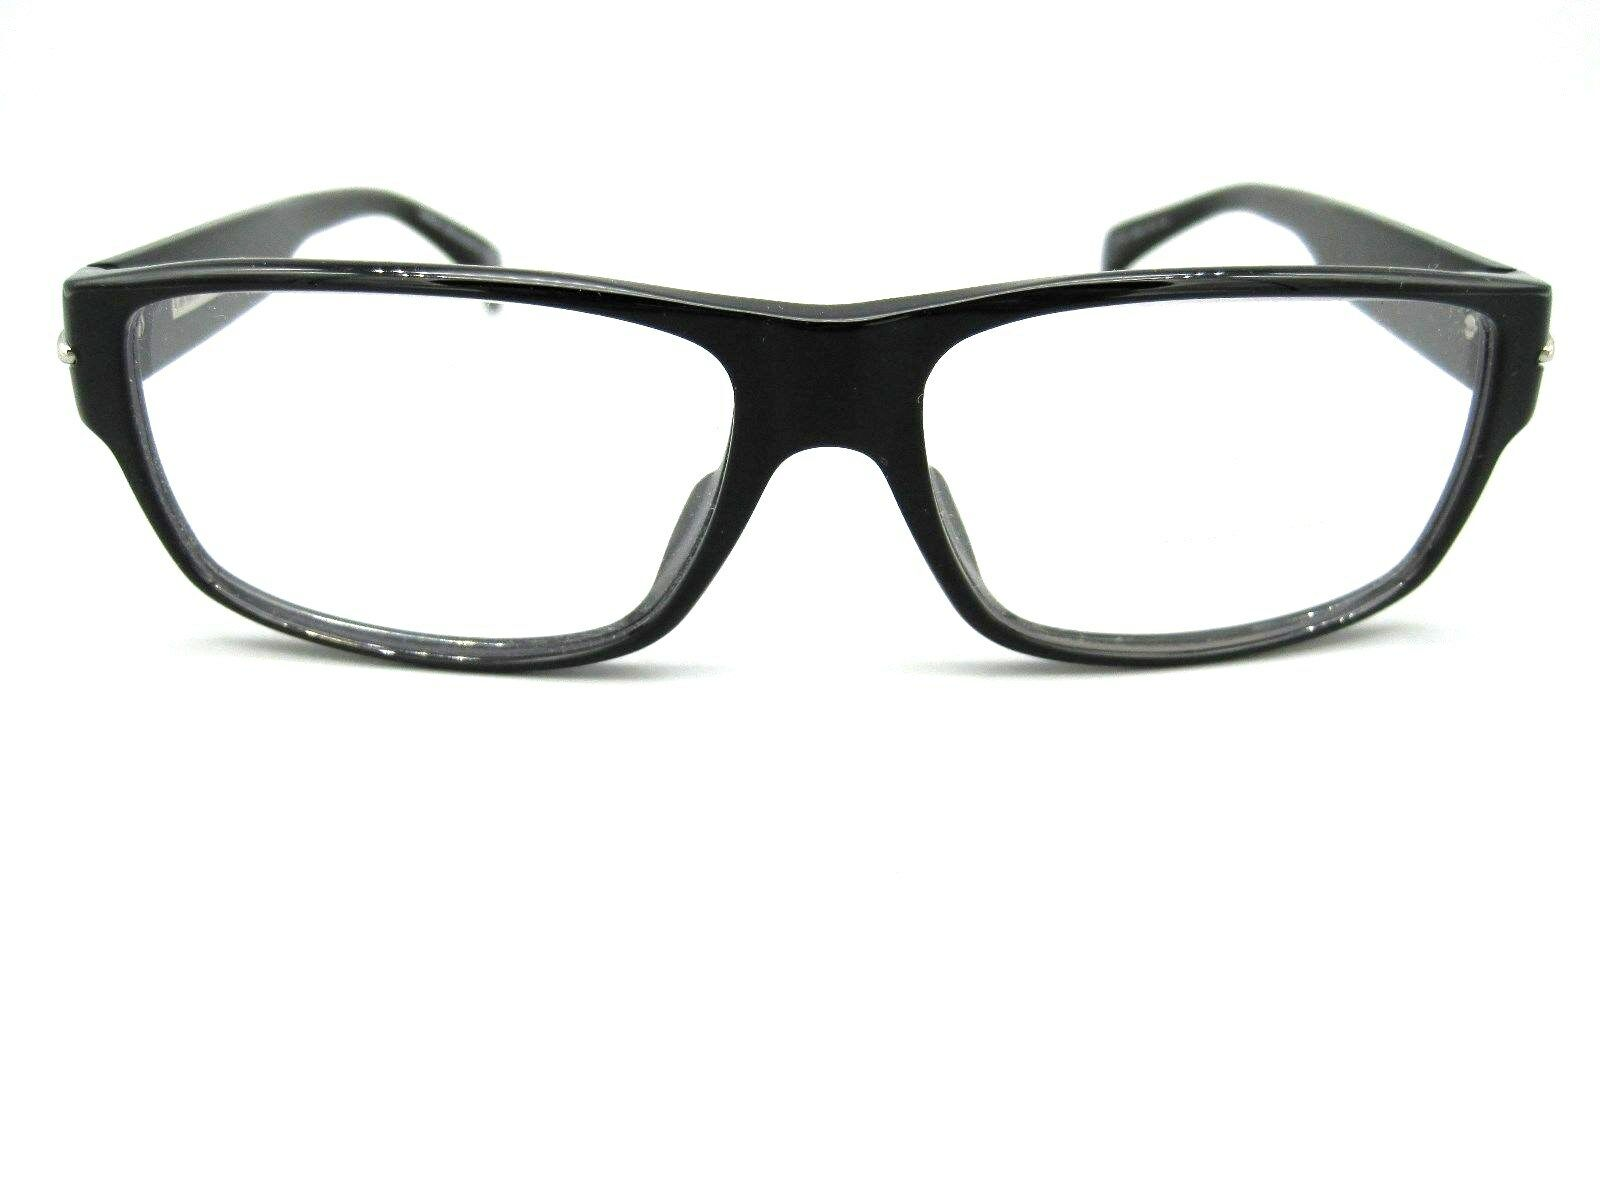 GIORGIO ARMANI BRILLE, frame correction men, Mod. GA751/S color ...